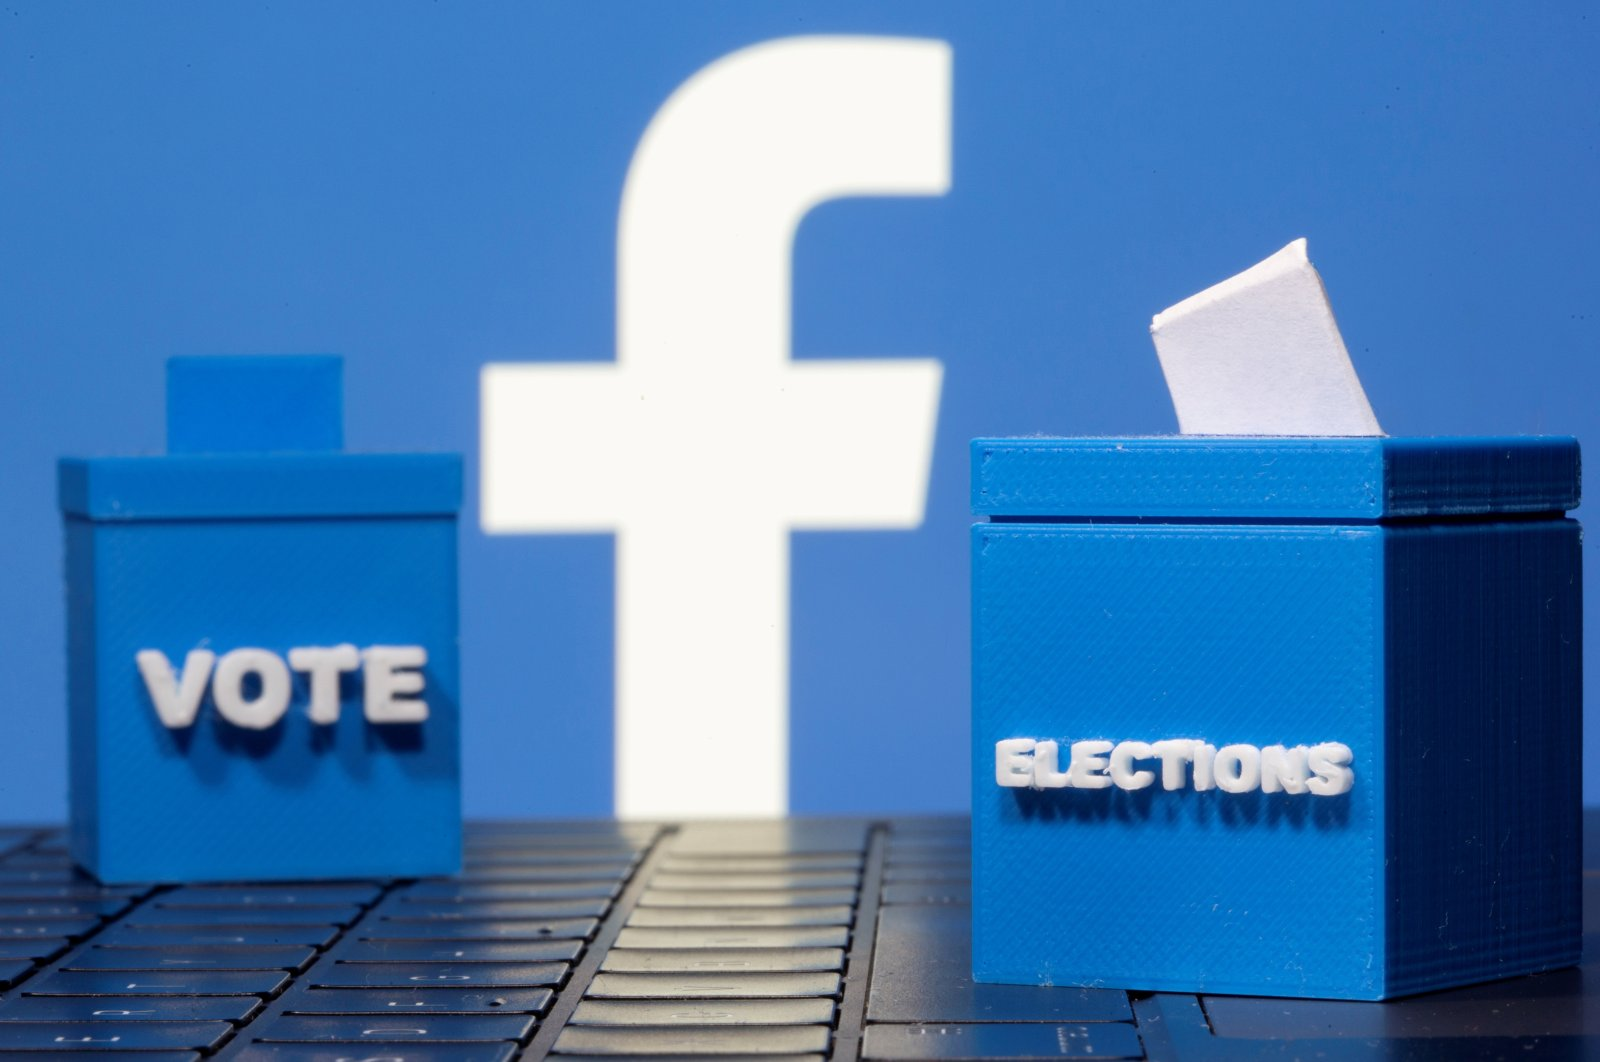 3D printed ballot boxes are seen in front of a displayed Facebook logo in this illustration taken Nov. 4, 2020. (Reuters Photo)